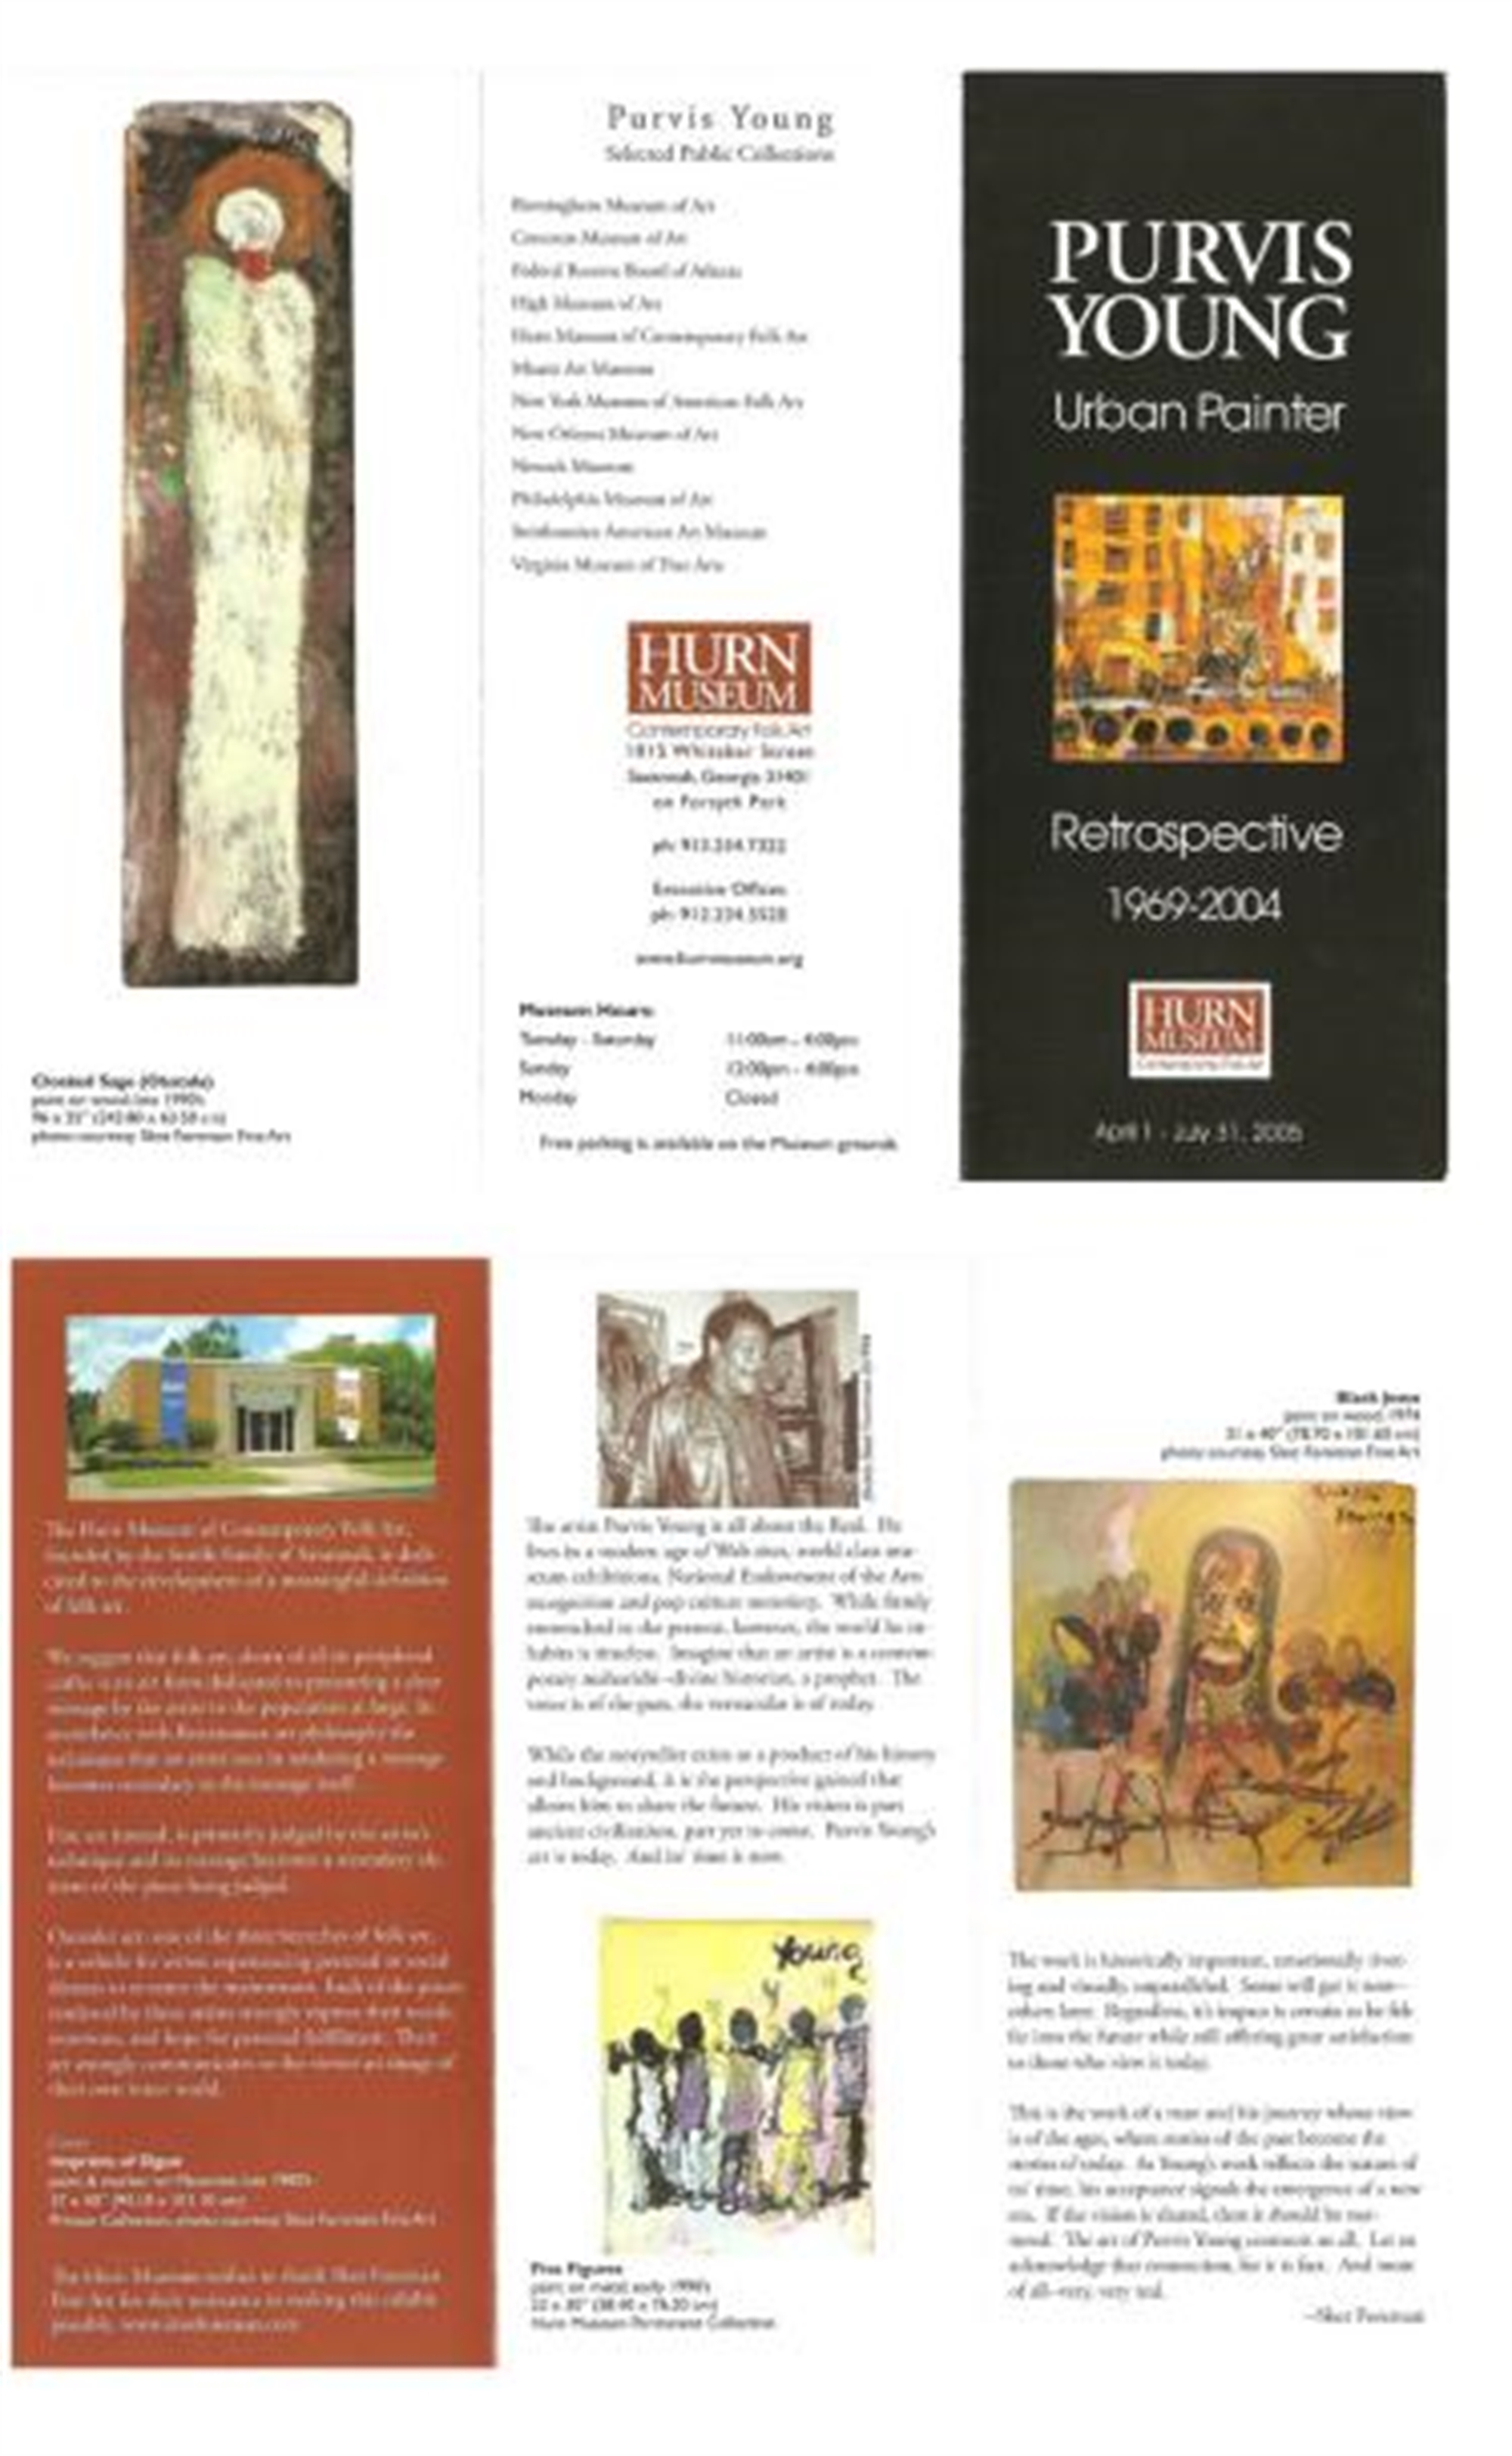 Hurn Museum Retrospective Brochure by Purvis Young